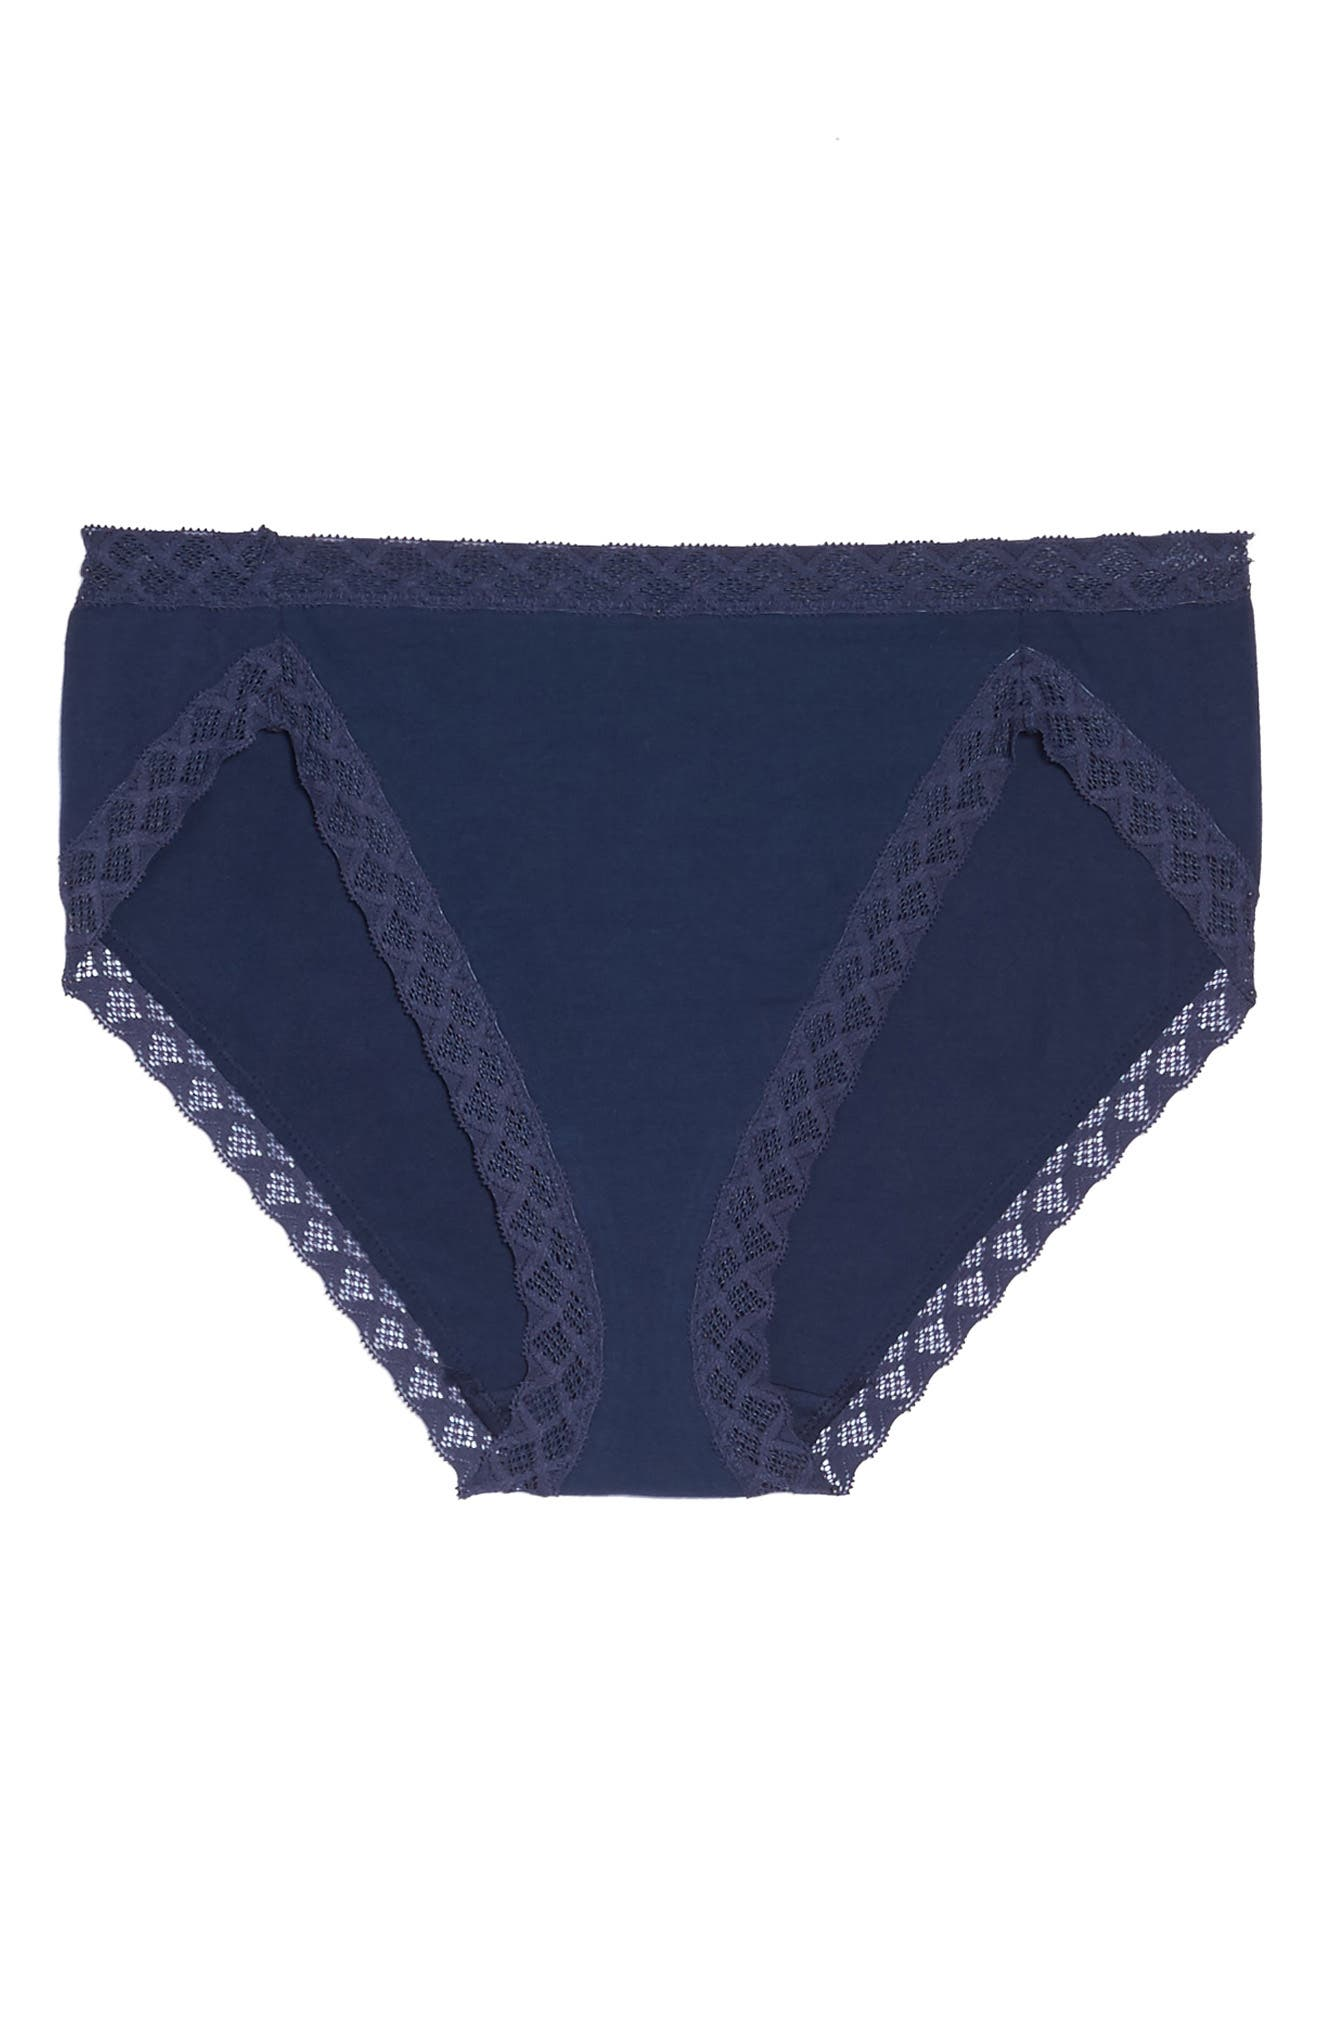 Bliss French Cut Briefs,                             Alternate thumbnail 5, color,                             NIGHT